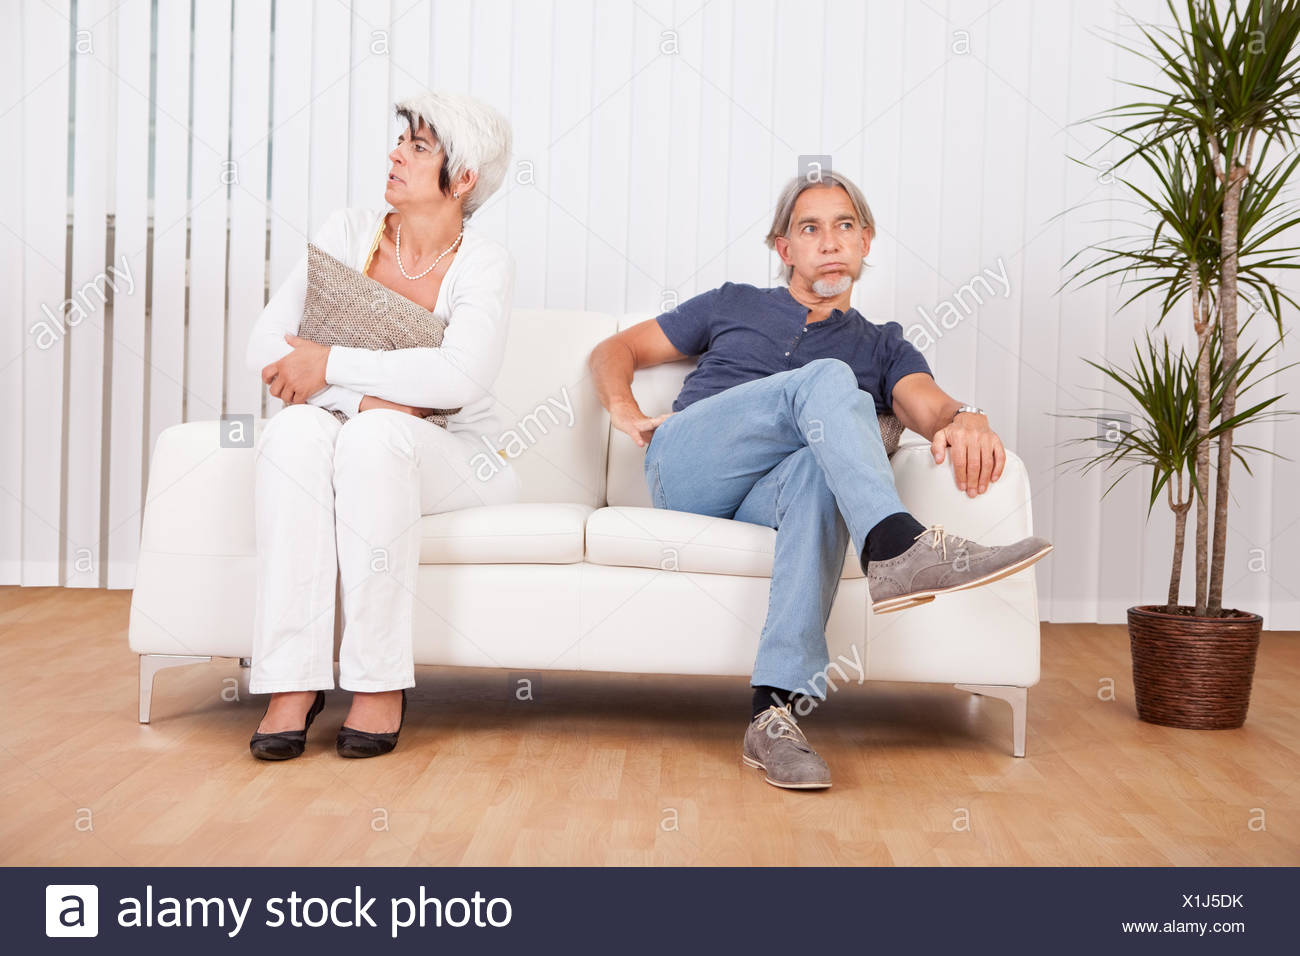 Senior couple after an argument sitting at opposite ends of the sofa sulking and looking away from each other into the distance - Stock Image